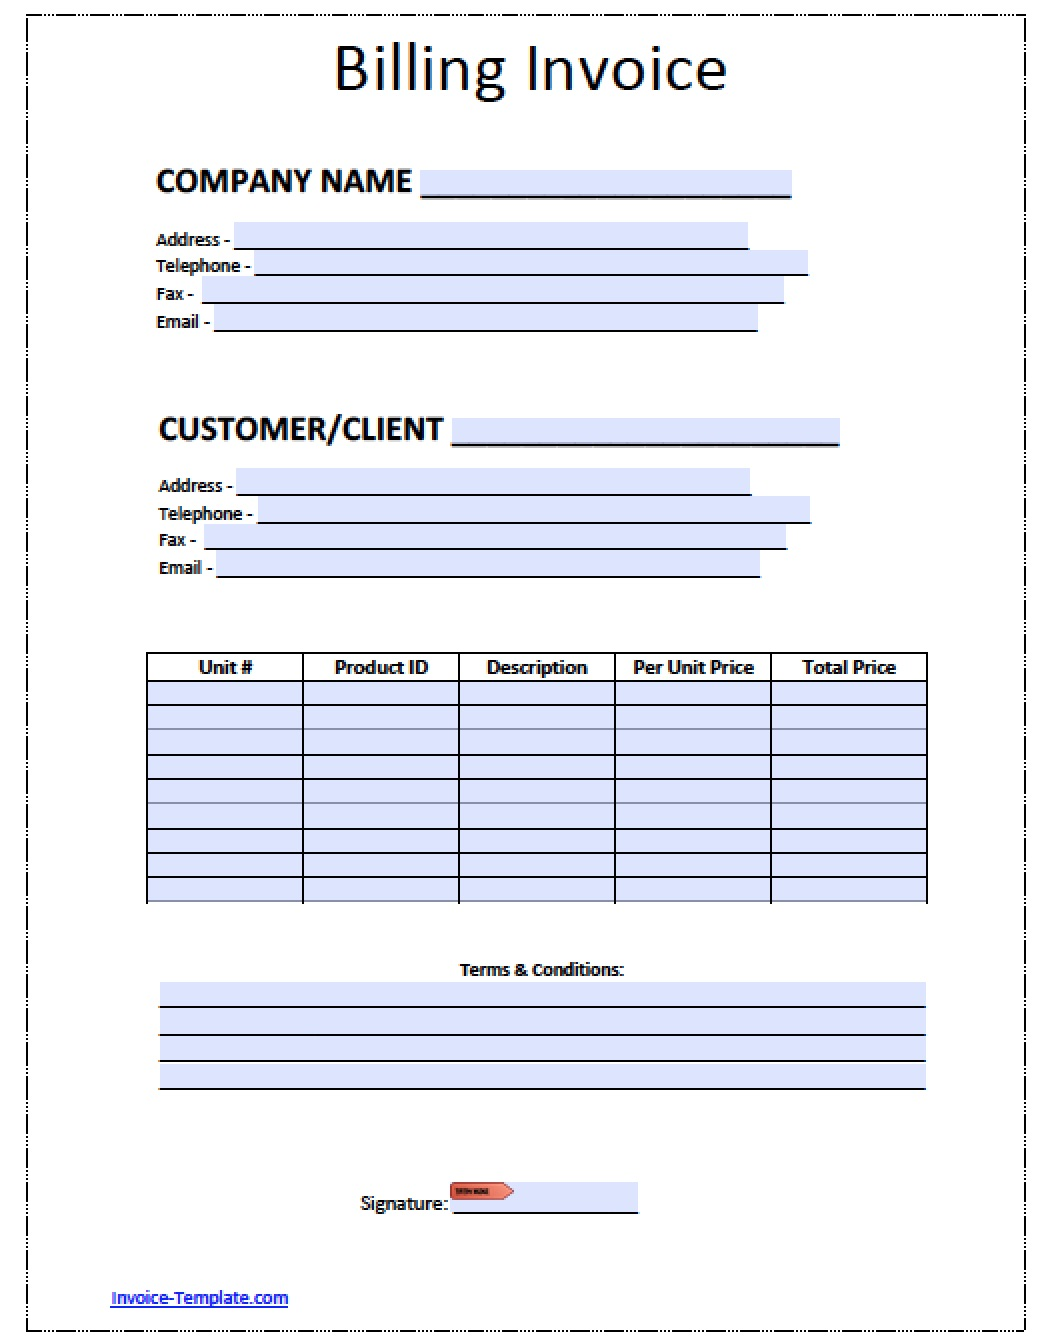 Free Billing Invoice Template Excel PDF Word Doc - Invoice template word download